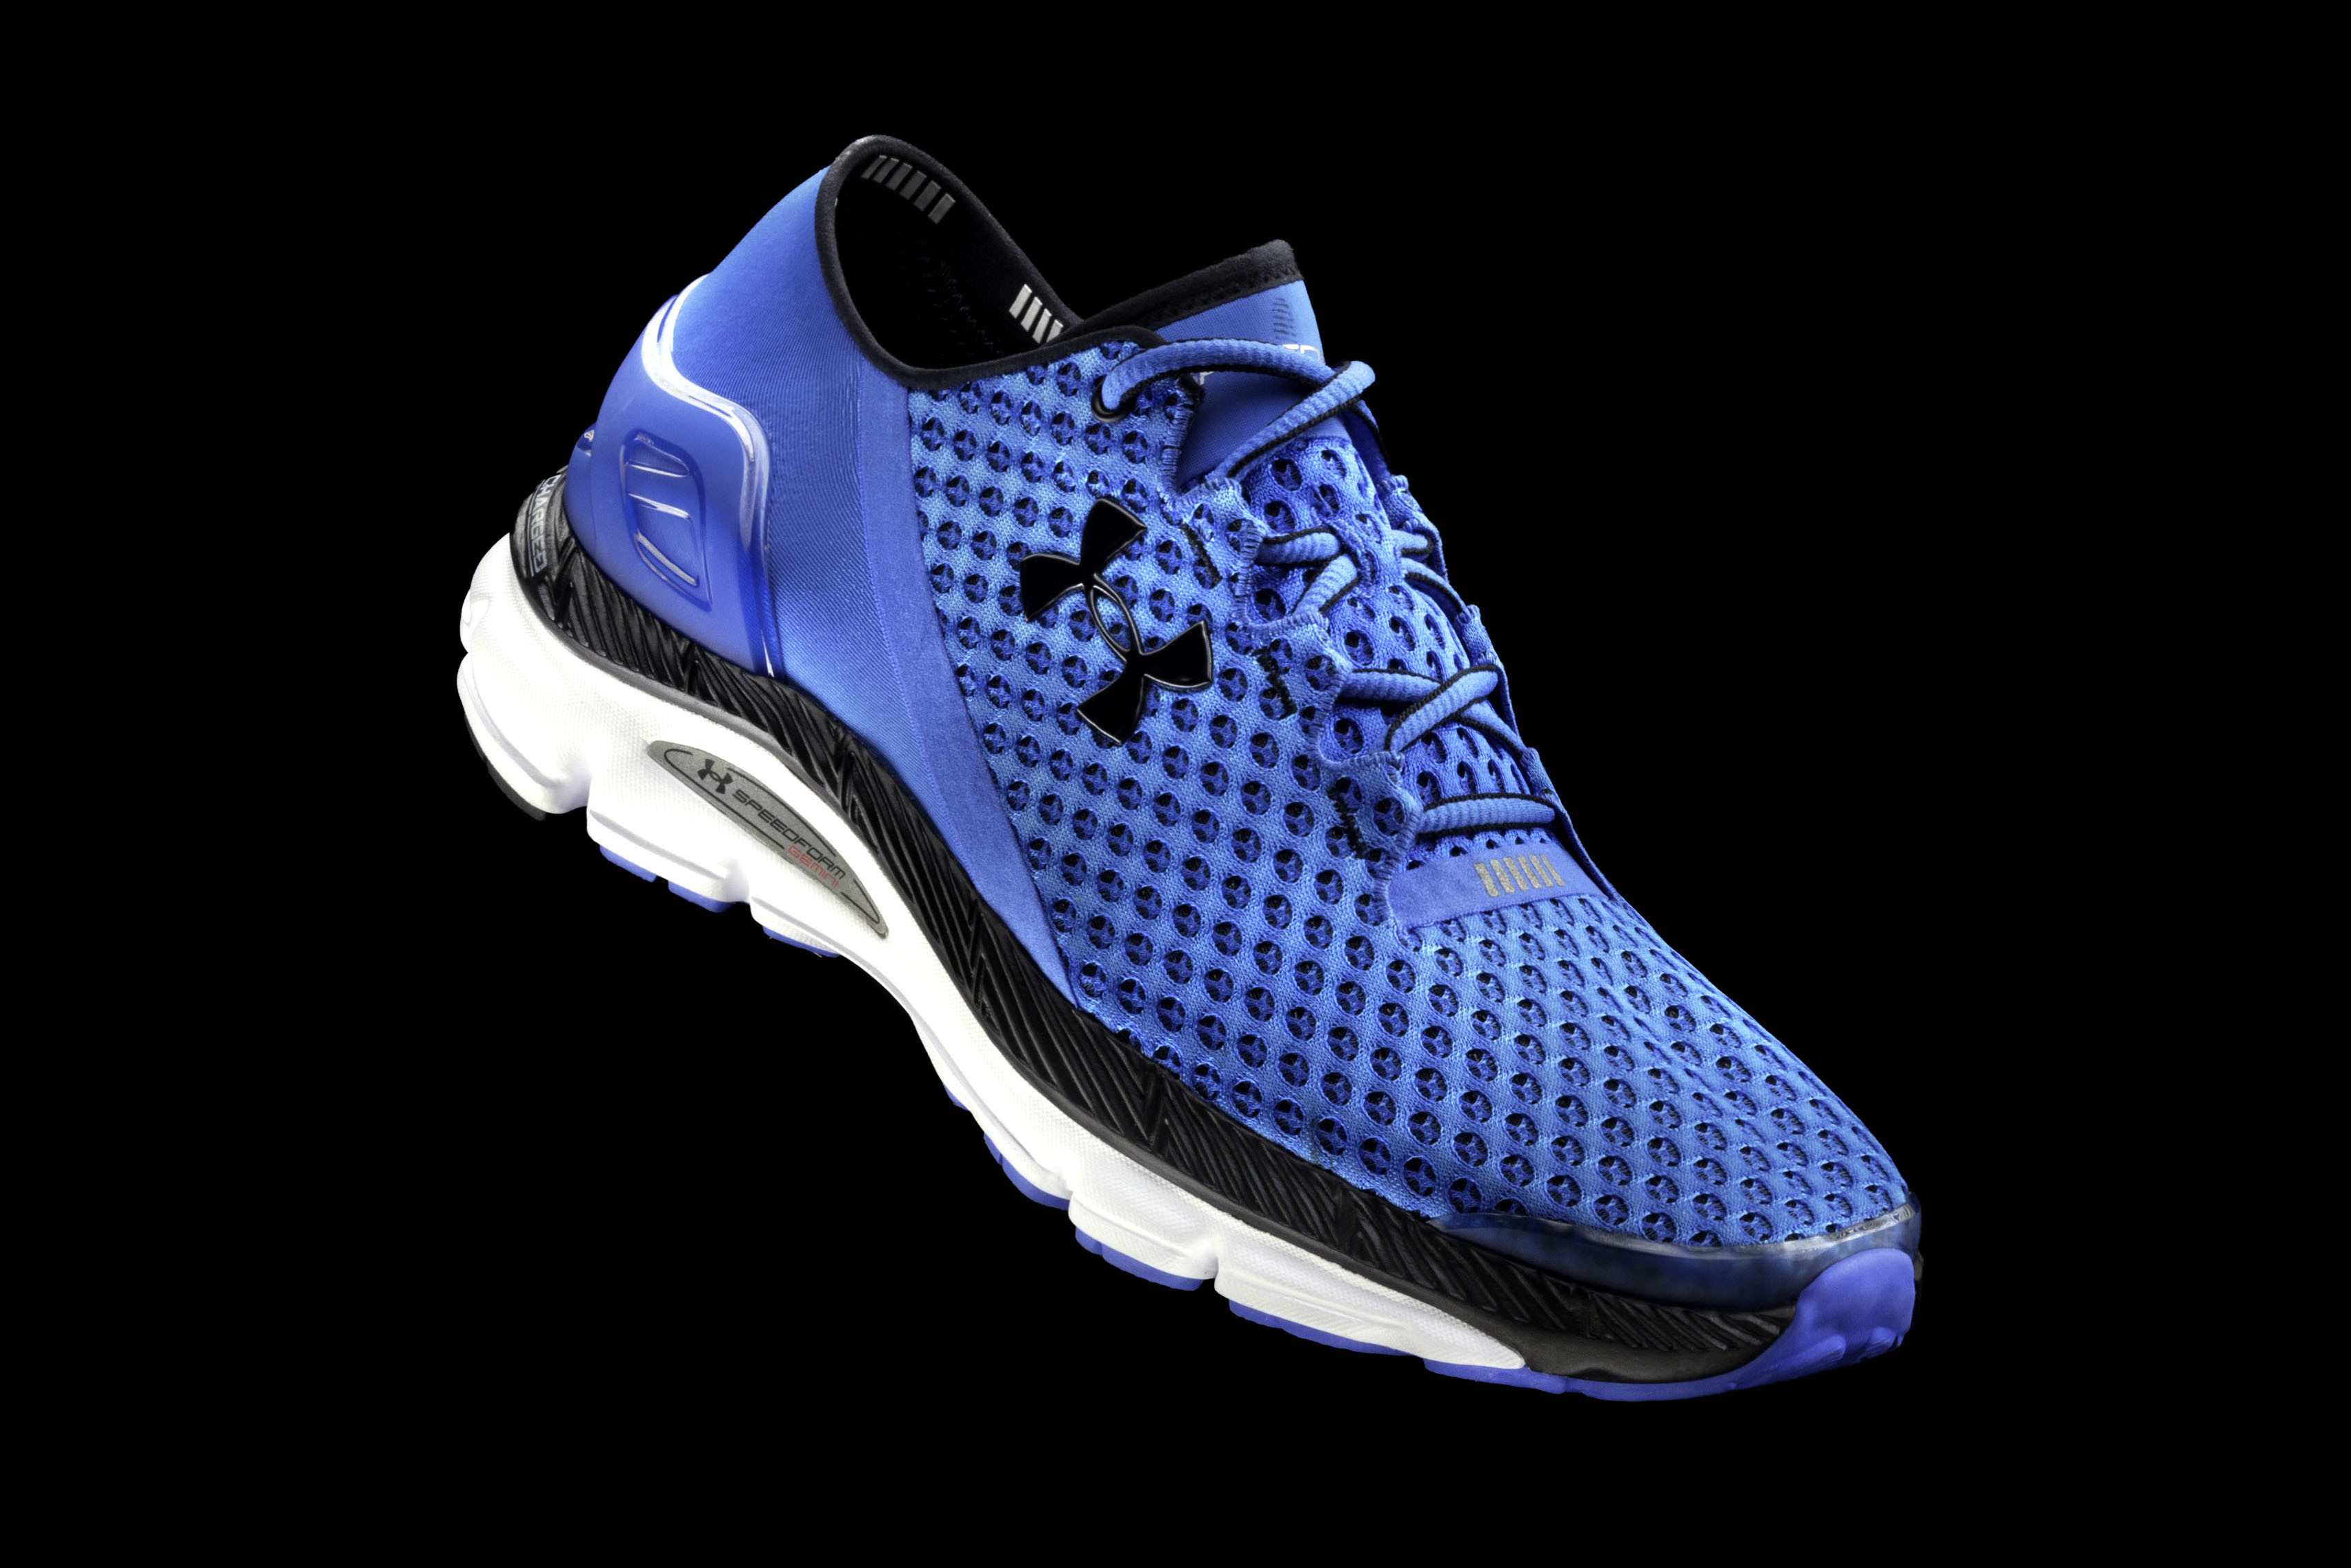 new under armour running shoes